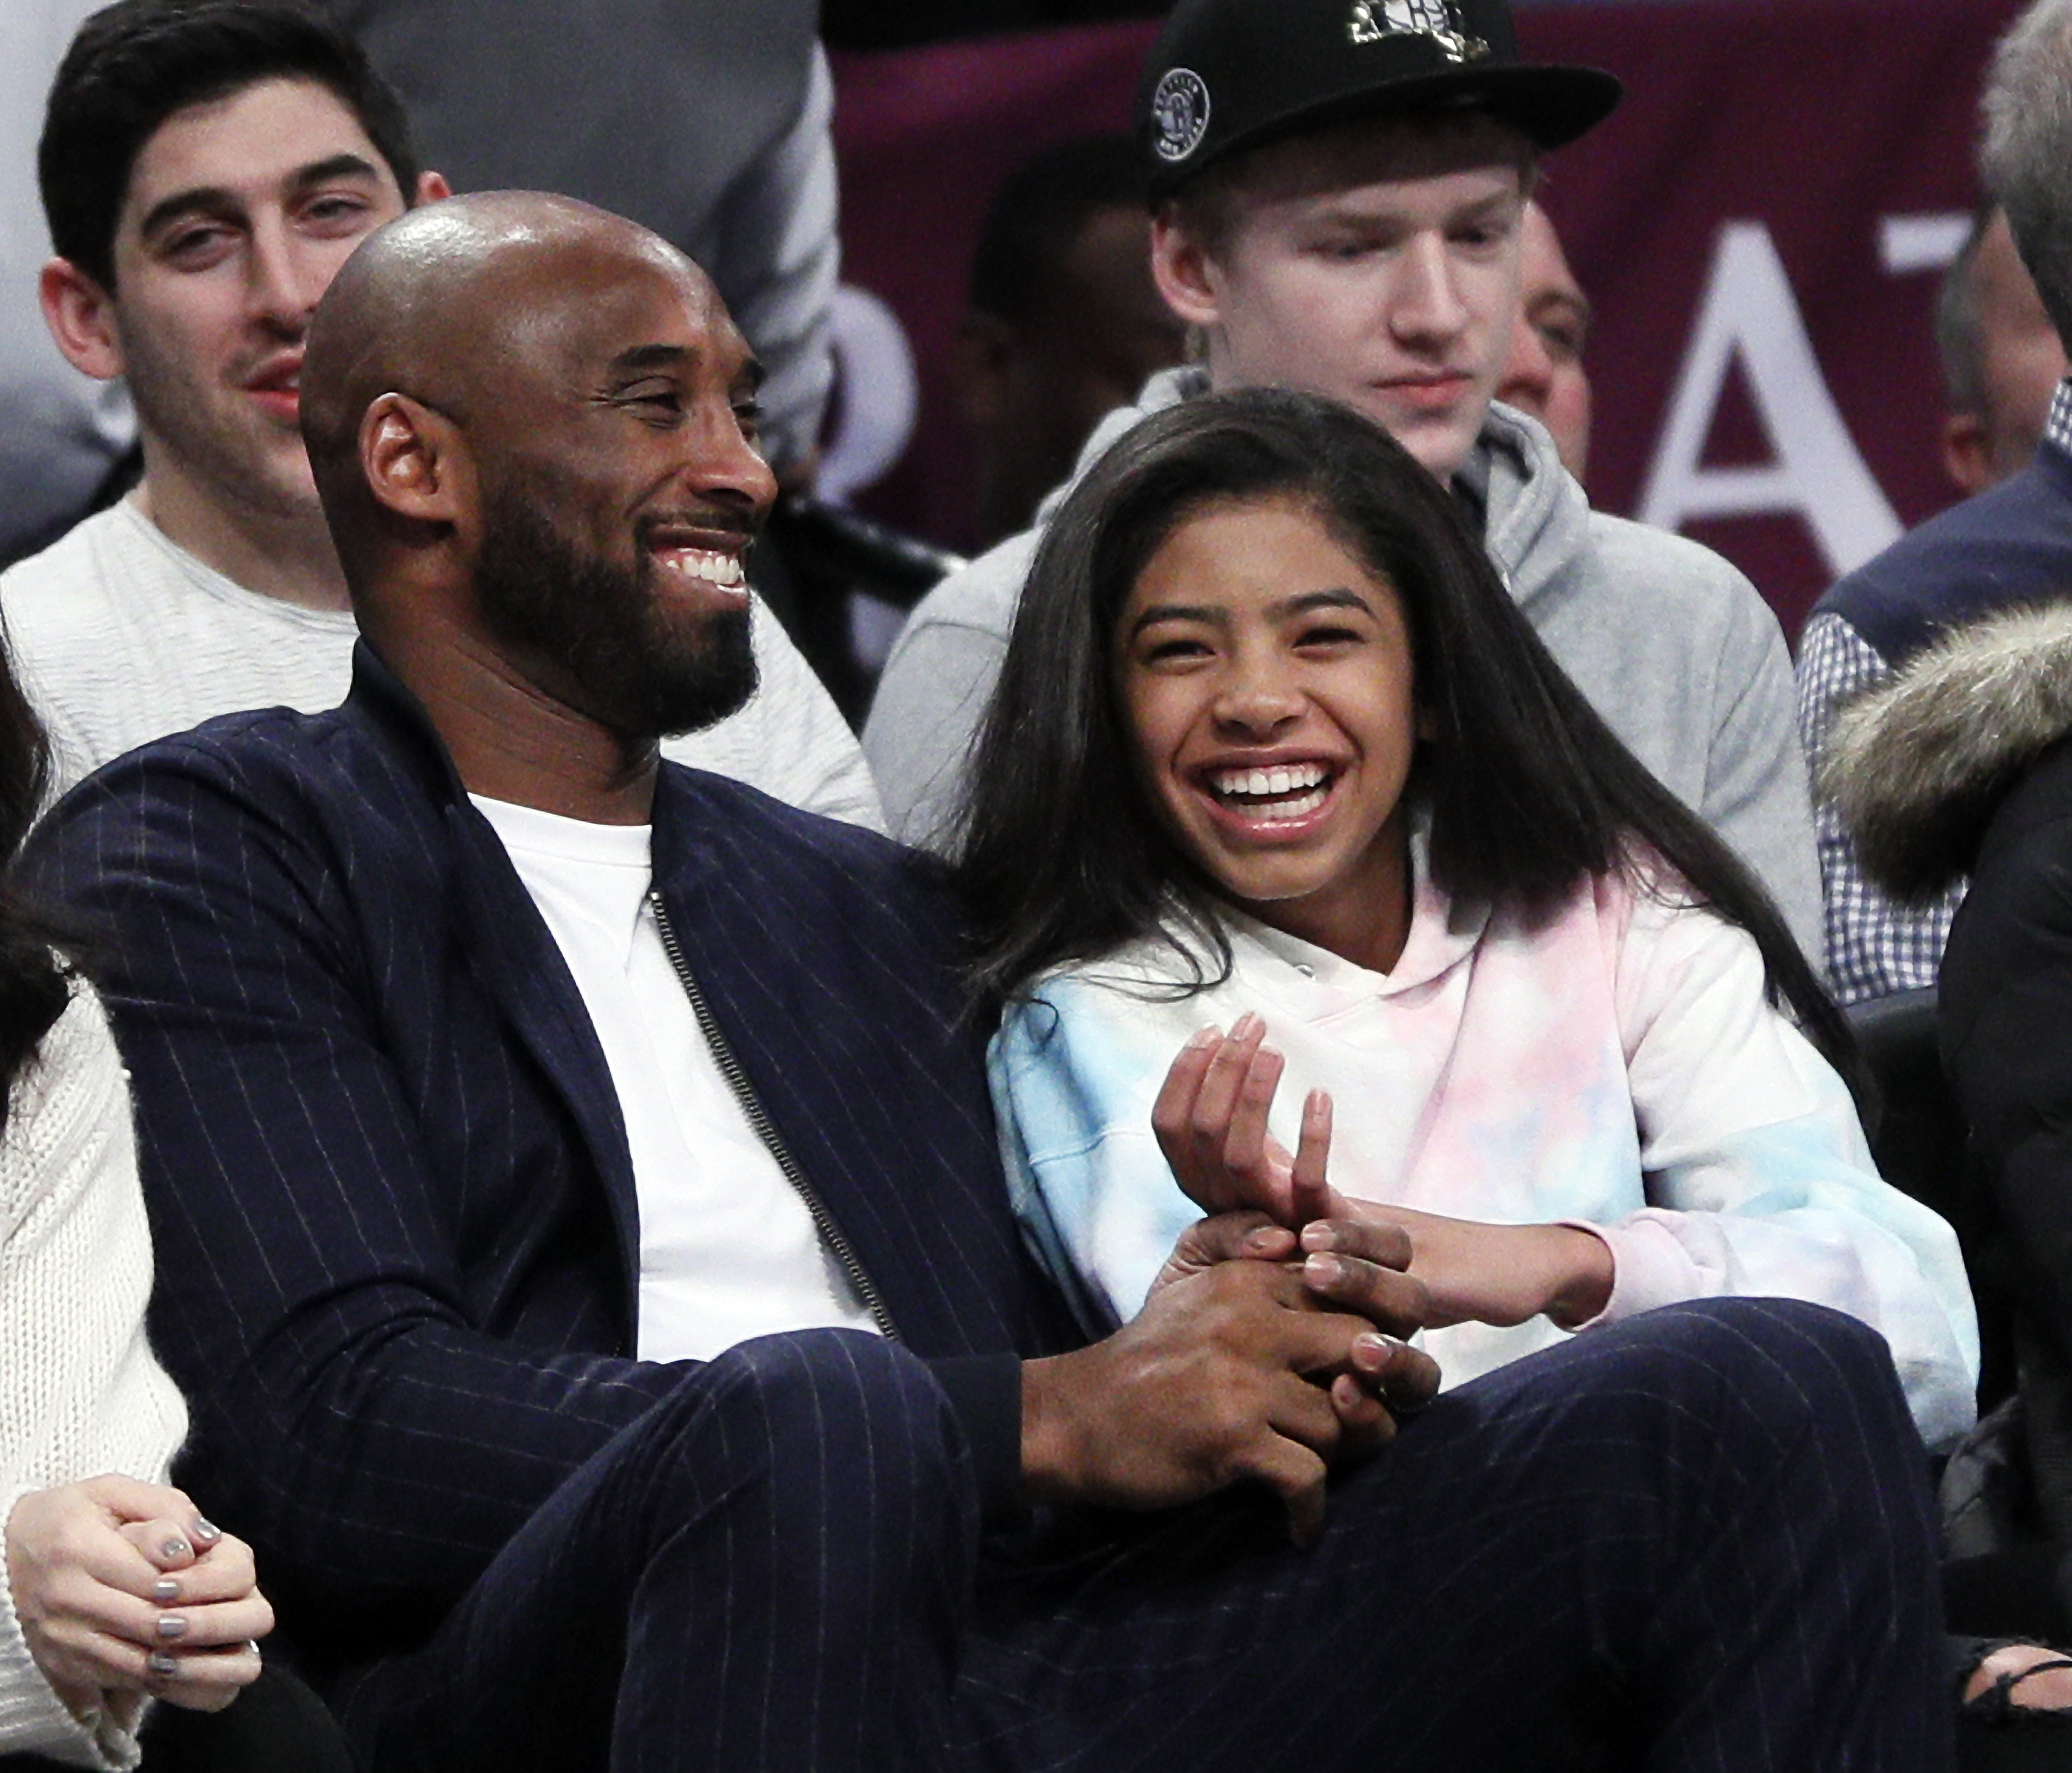 Kobe Bryant and his daughter Gigi, watch an NBA basketball game between the Brooklyn Nets and Atlanta Hawks on December 21, 2019 | Photo: GettyImages